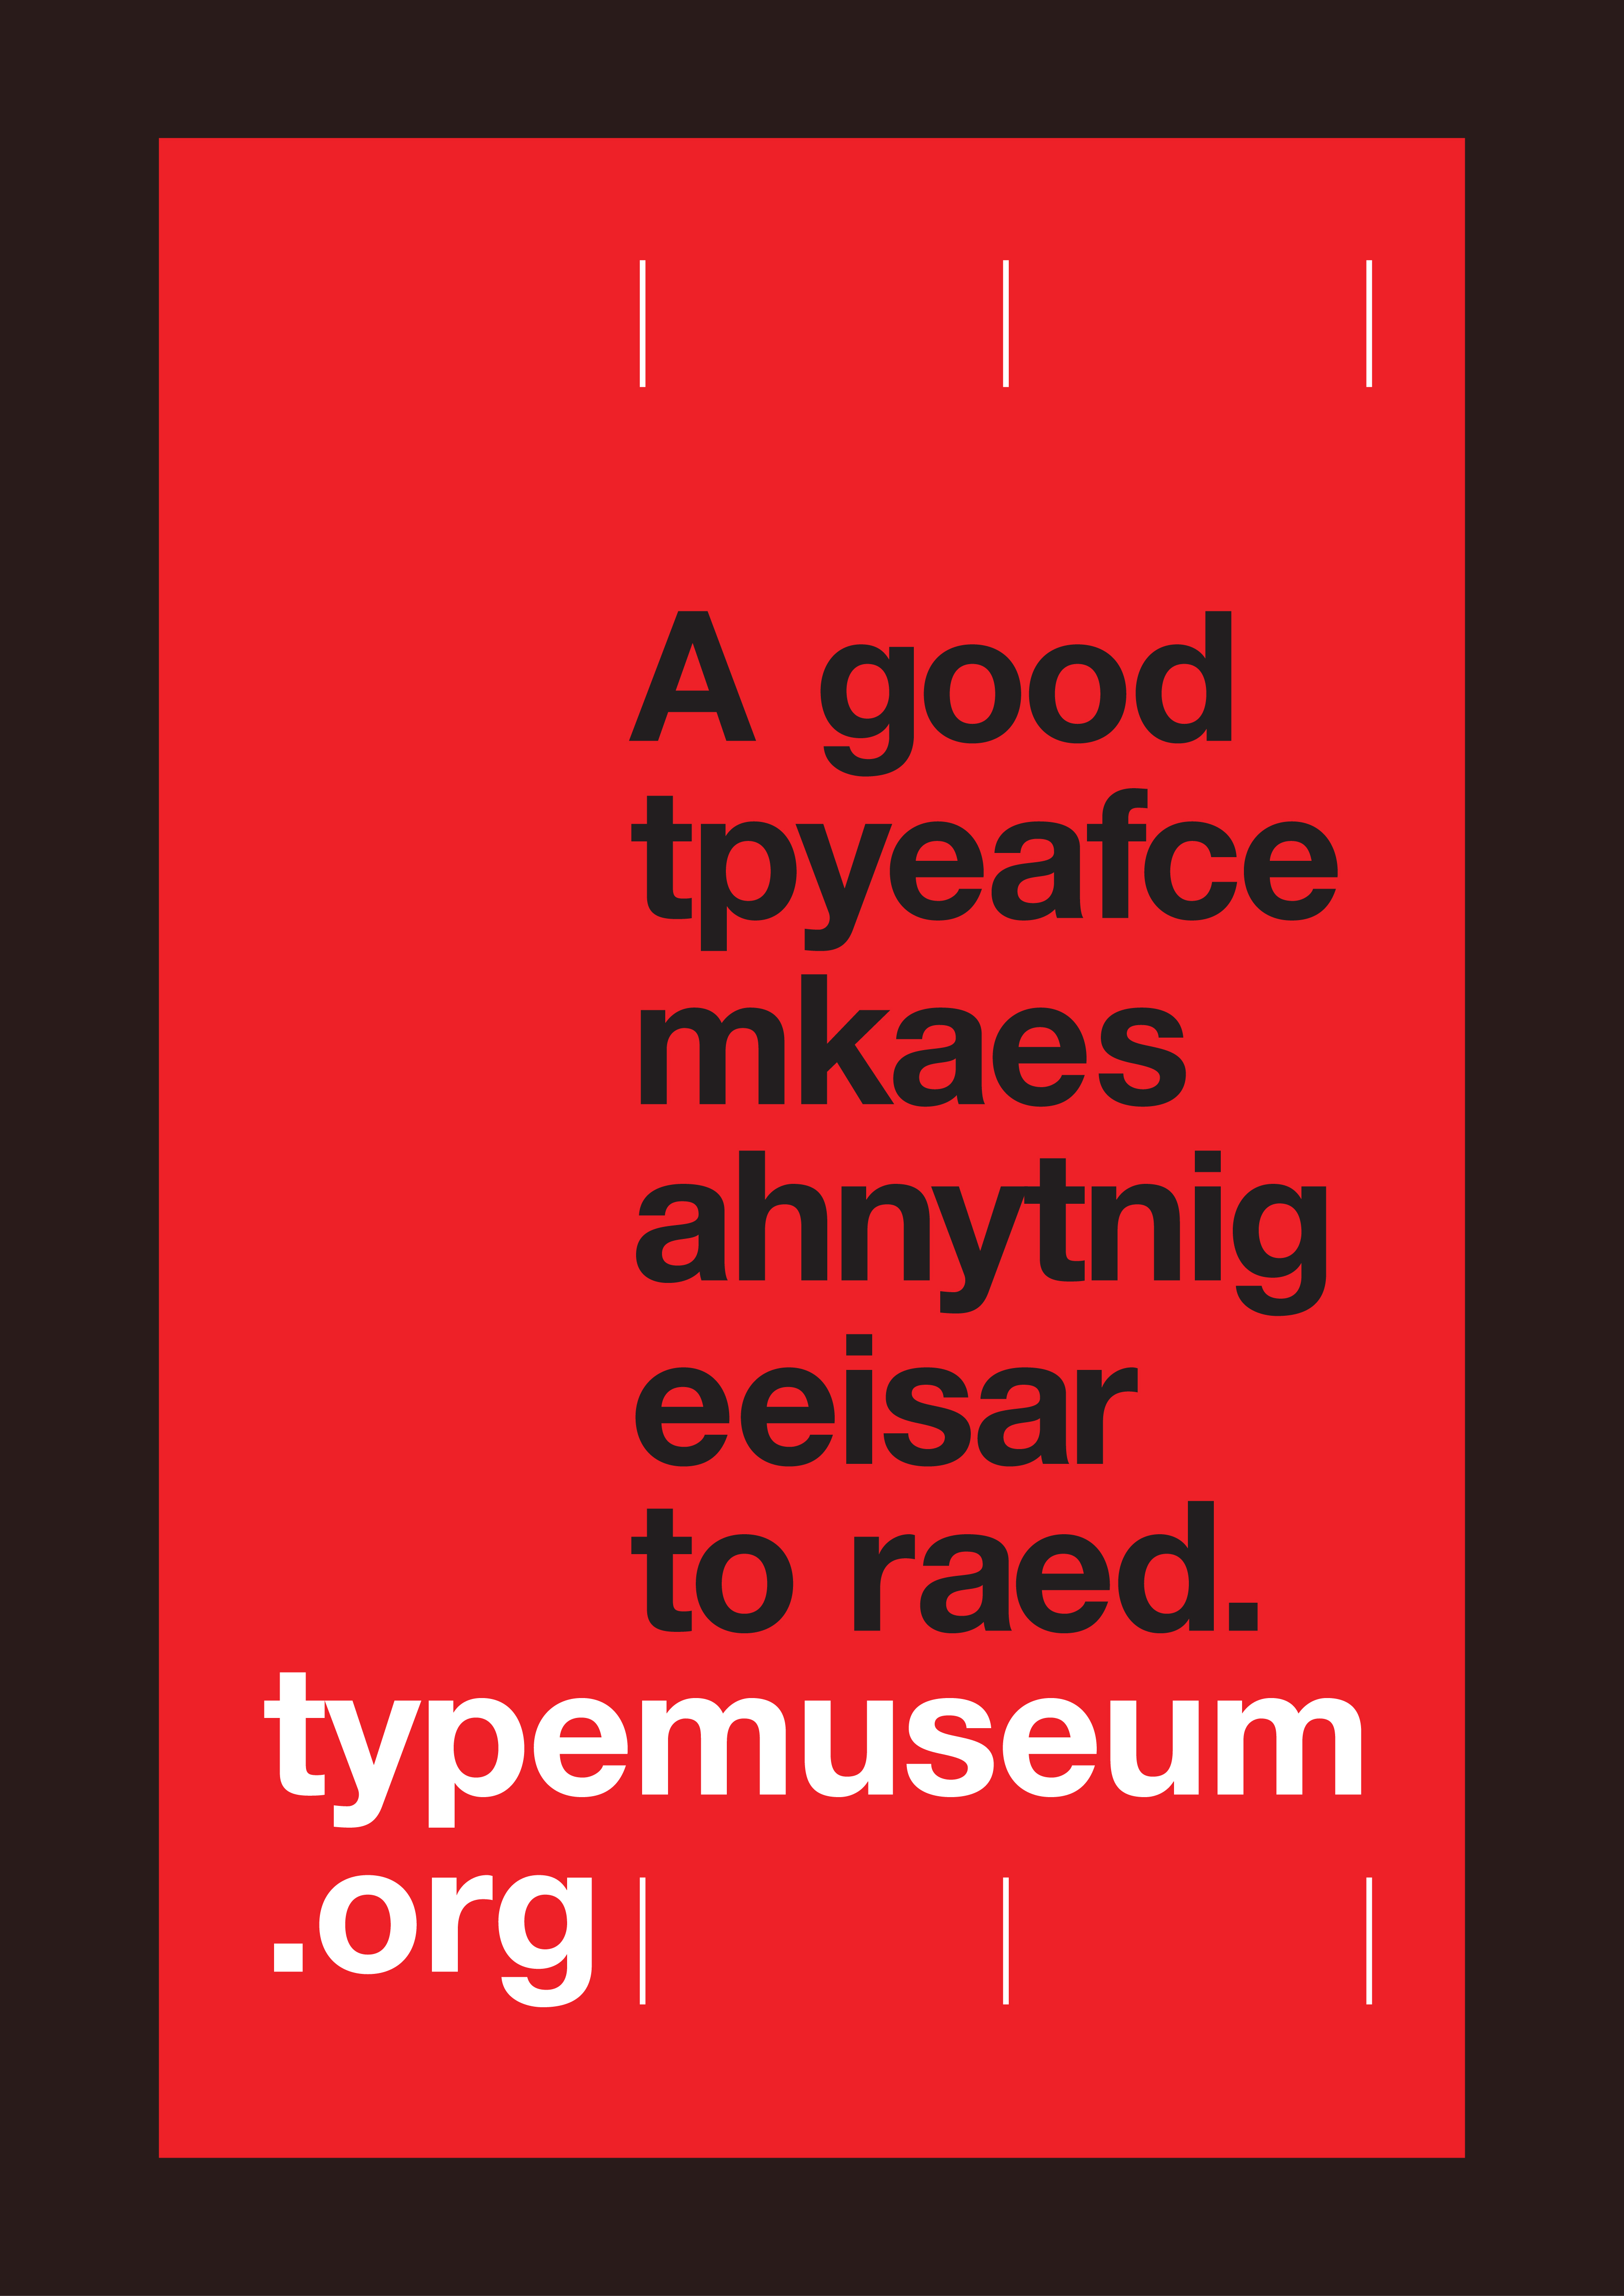 A good tpyeafce mkaes ahnytnig eeisar to raed - typemuseum.org